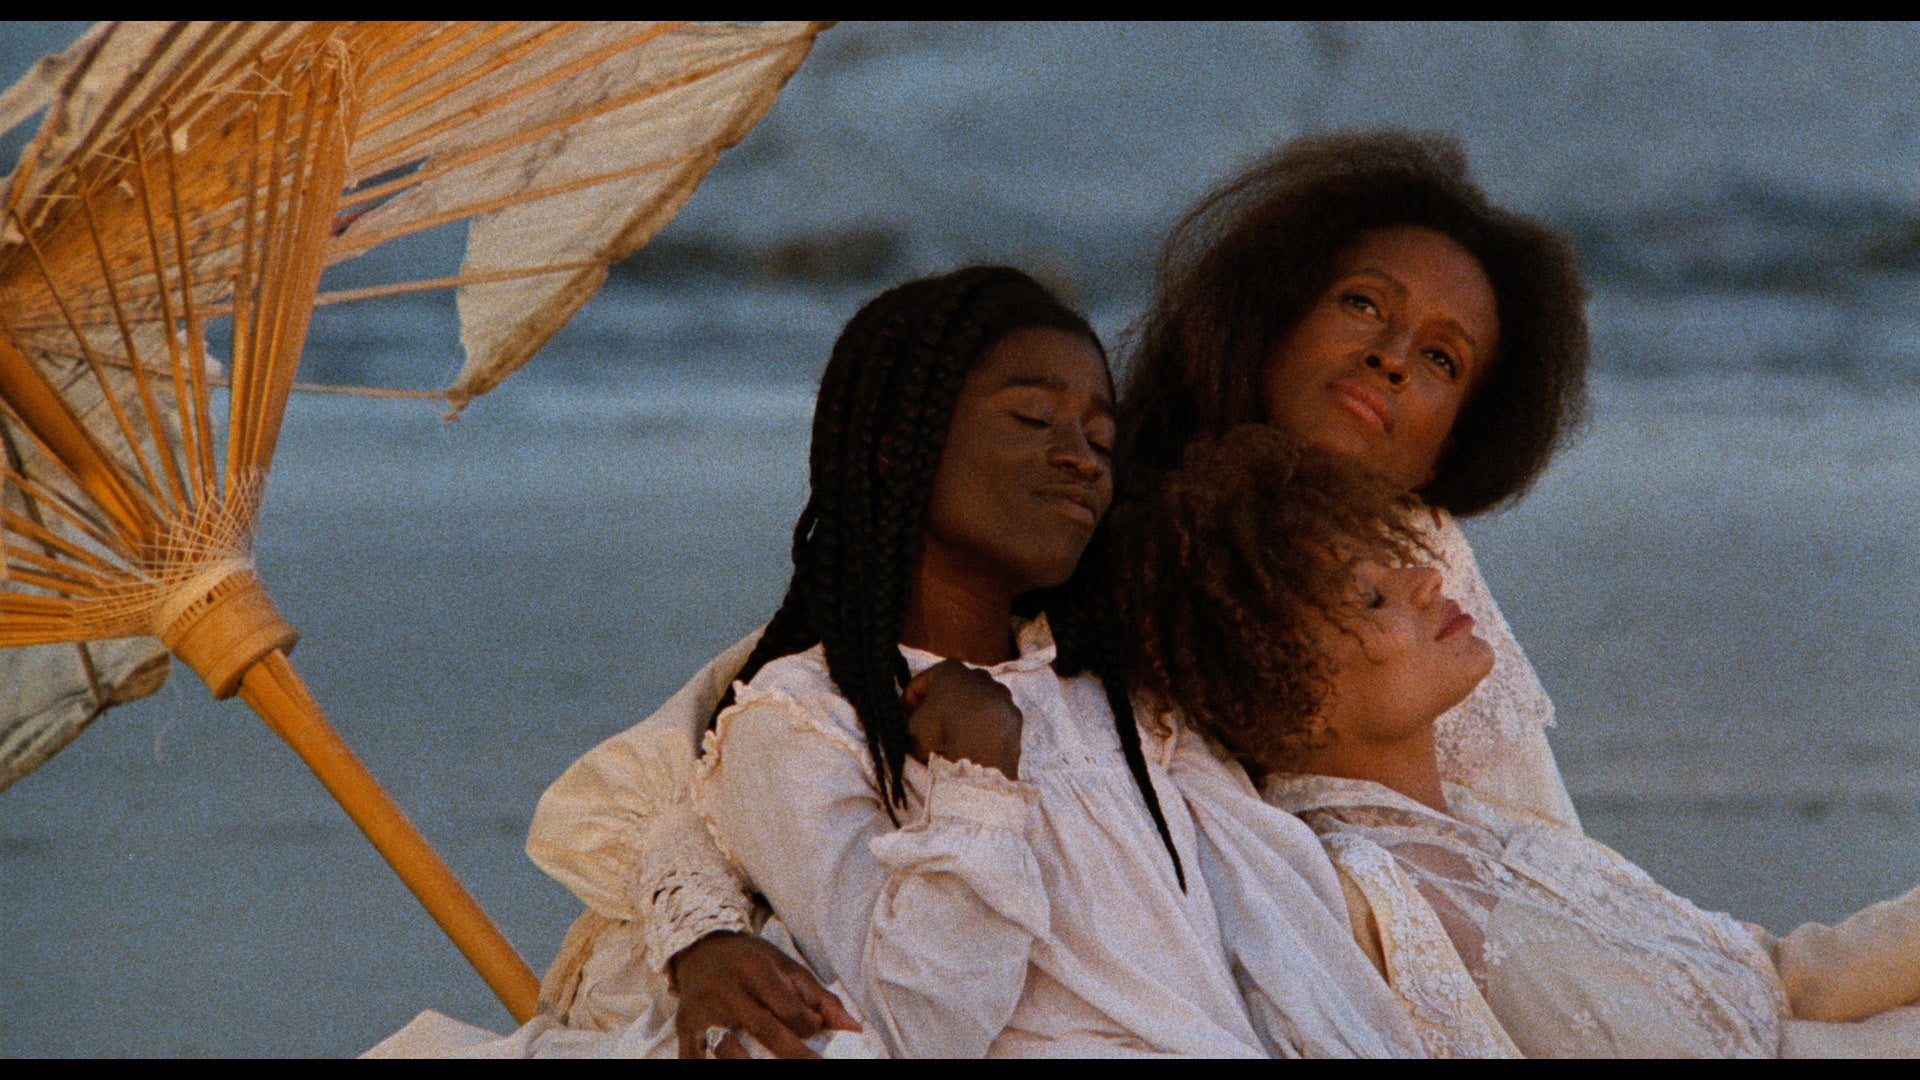 '90s Film 'Daughters of the Dust' Returns To Theaters to Mesmerize & Inspire A New Generation